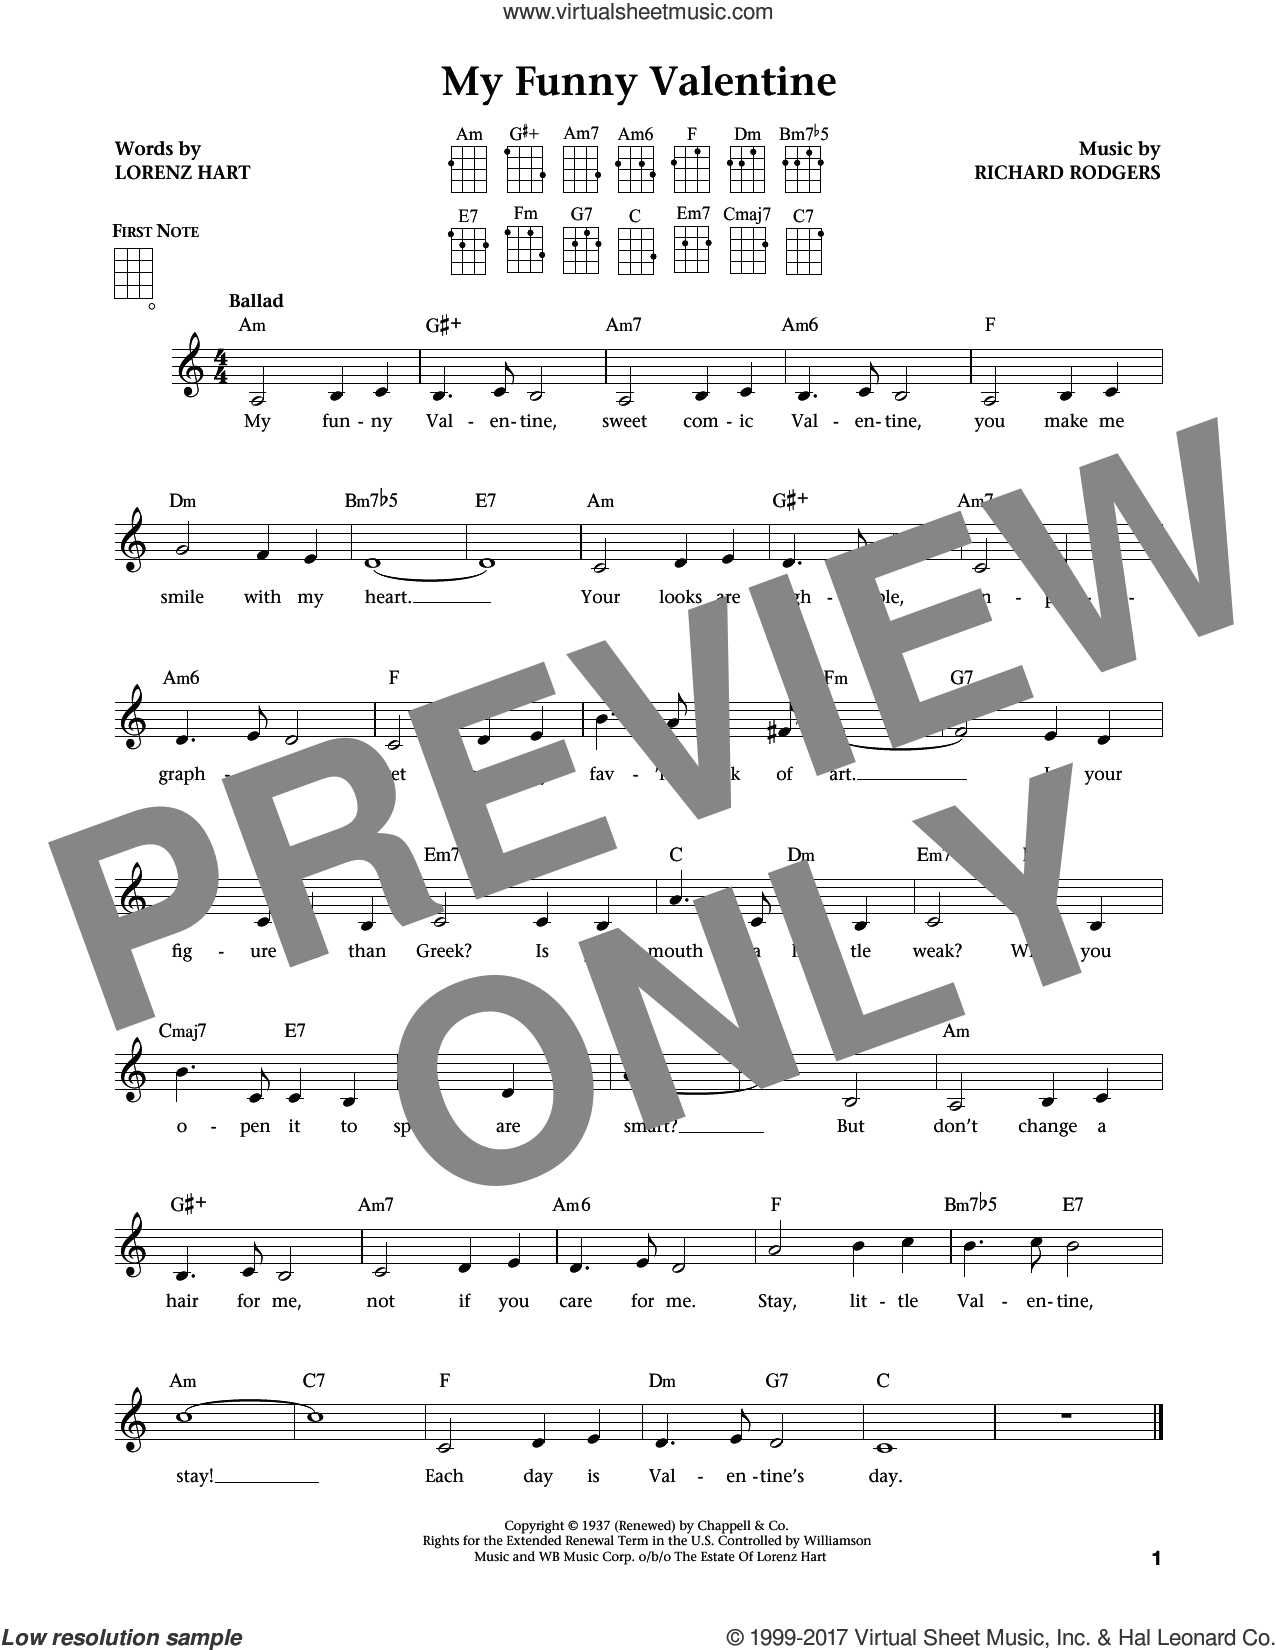 My Funny Valentine (from The Daily Ukulele) (arr. Liz and Jim Beloff) sheet music for ukulele by Rodgers & Hart, Jim Beloff, Liz Beloff, Lorenz Hart and Richard Rodgers, intermediate skill level